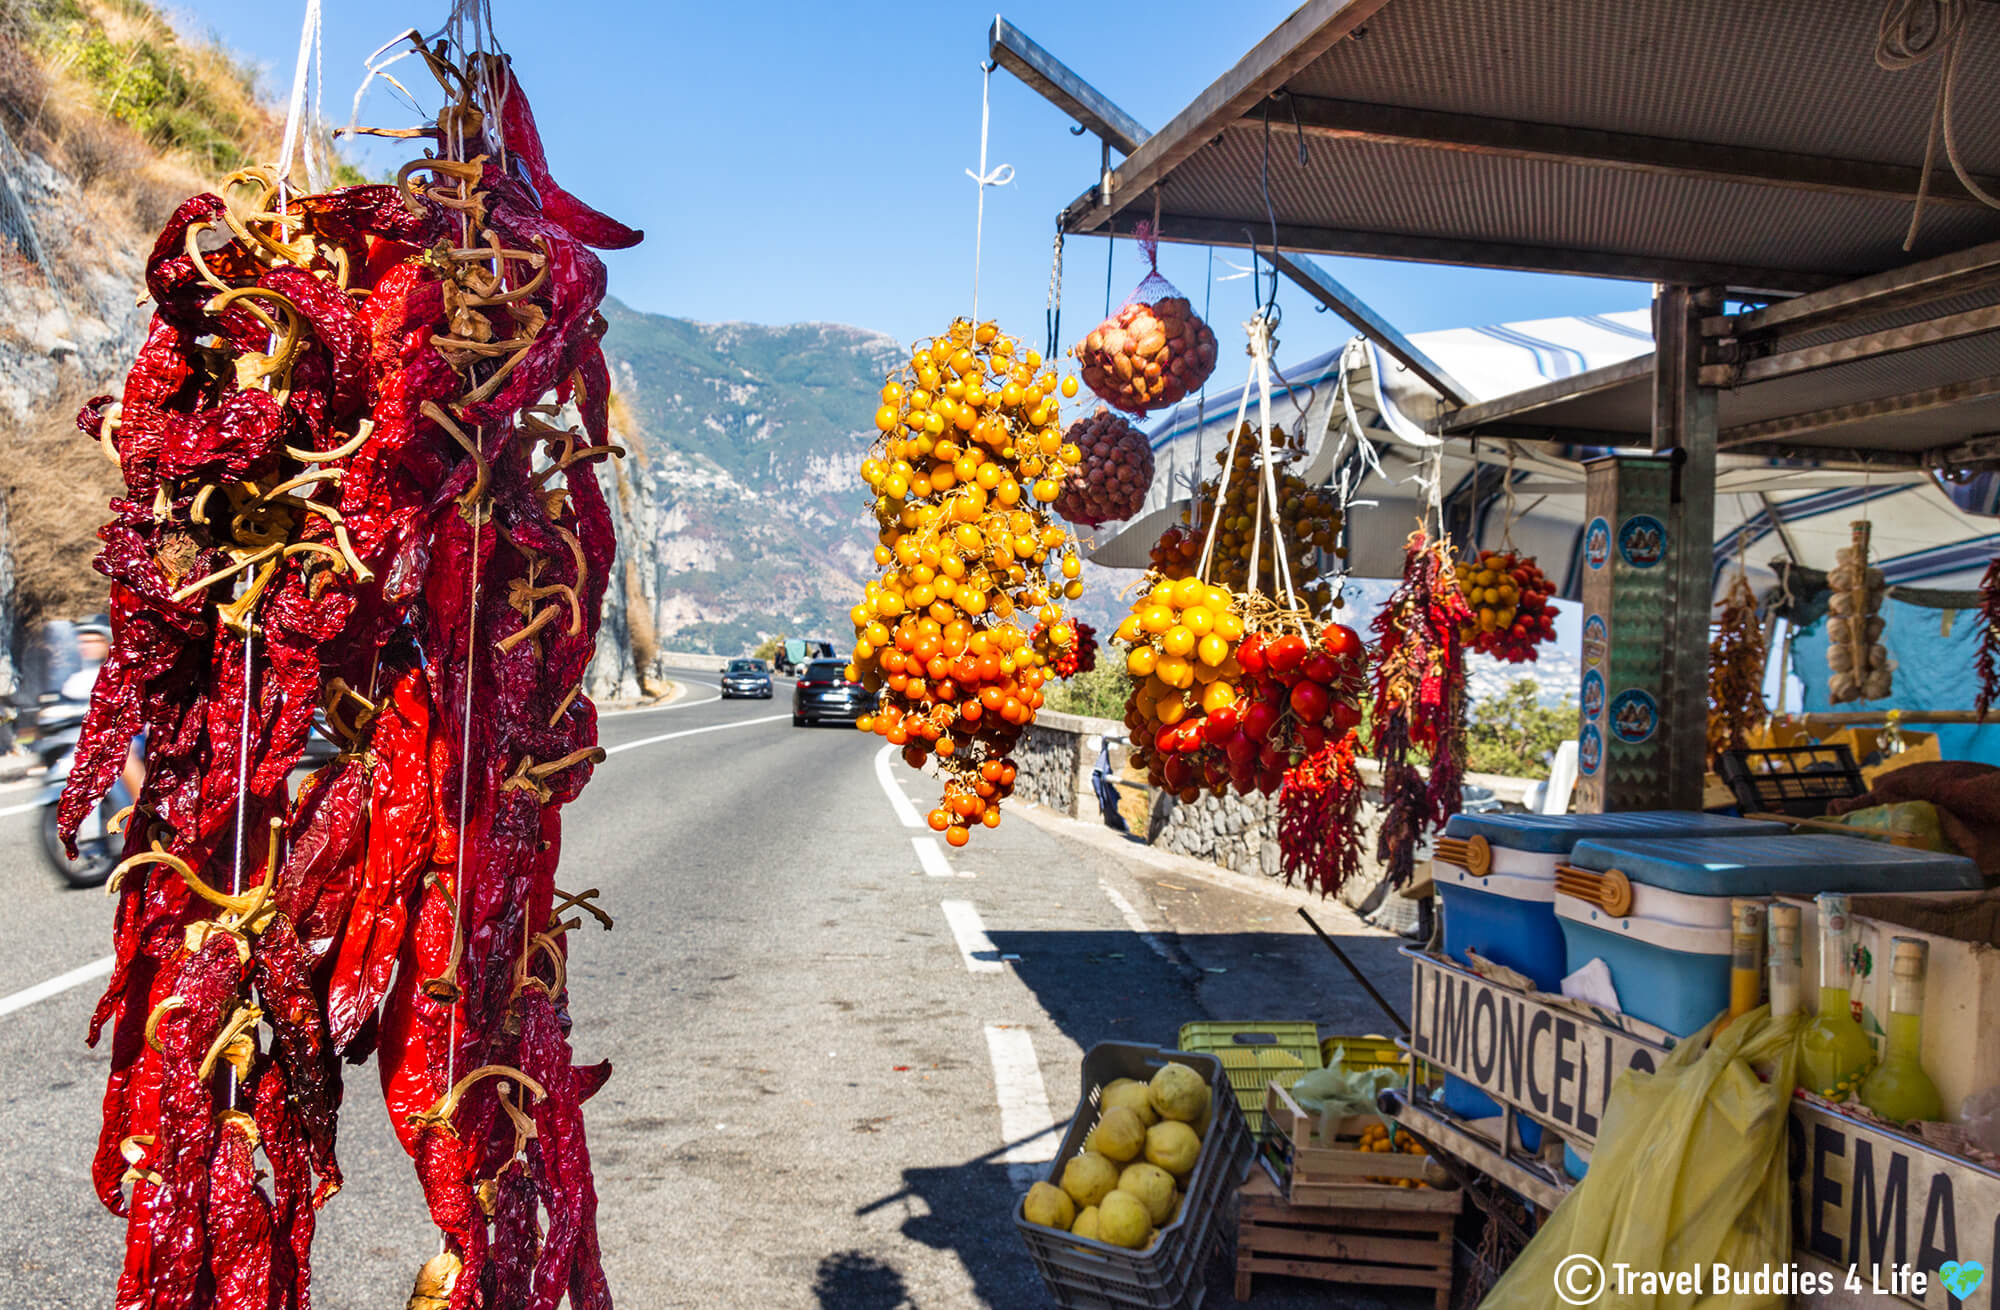 A Small Fruit And Vegetable Stand Around The Naples, Italy Region Of Europe